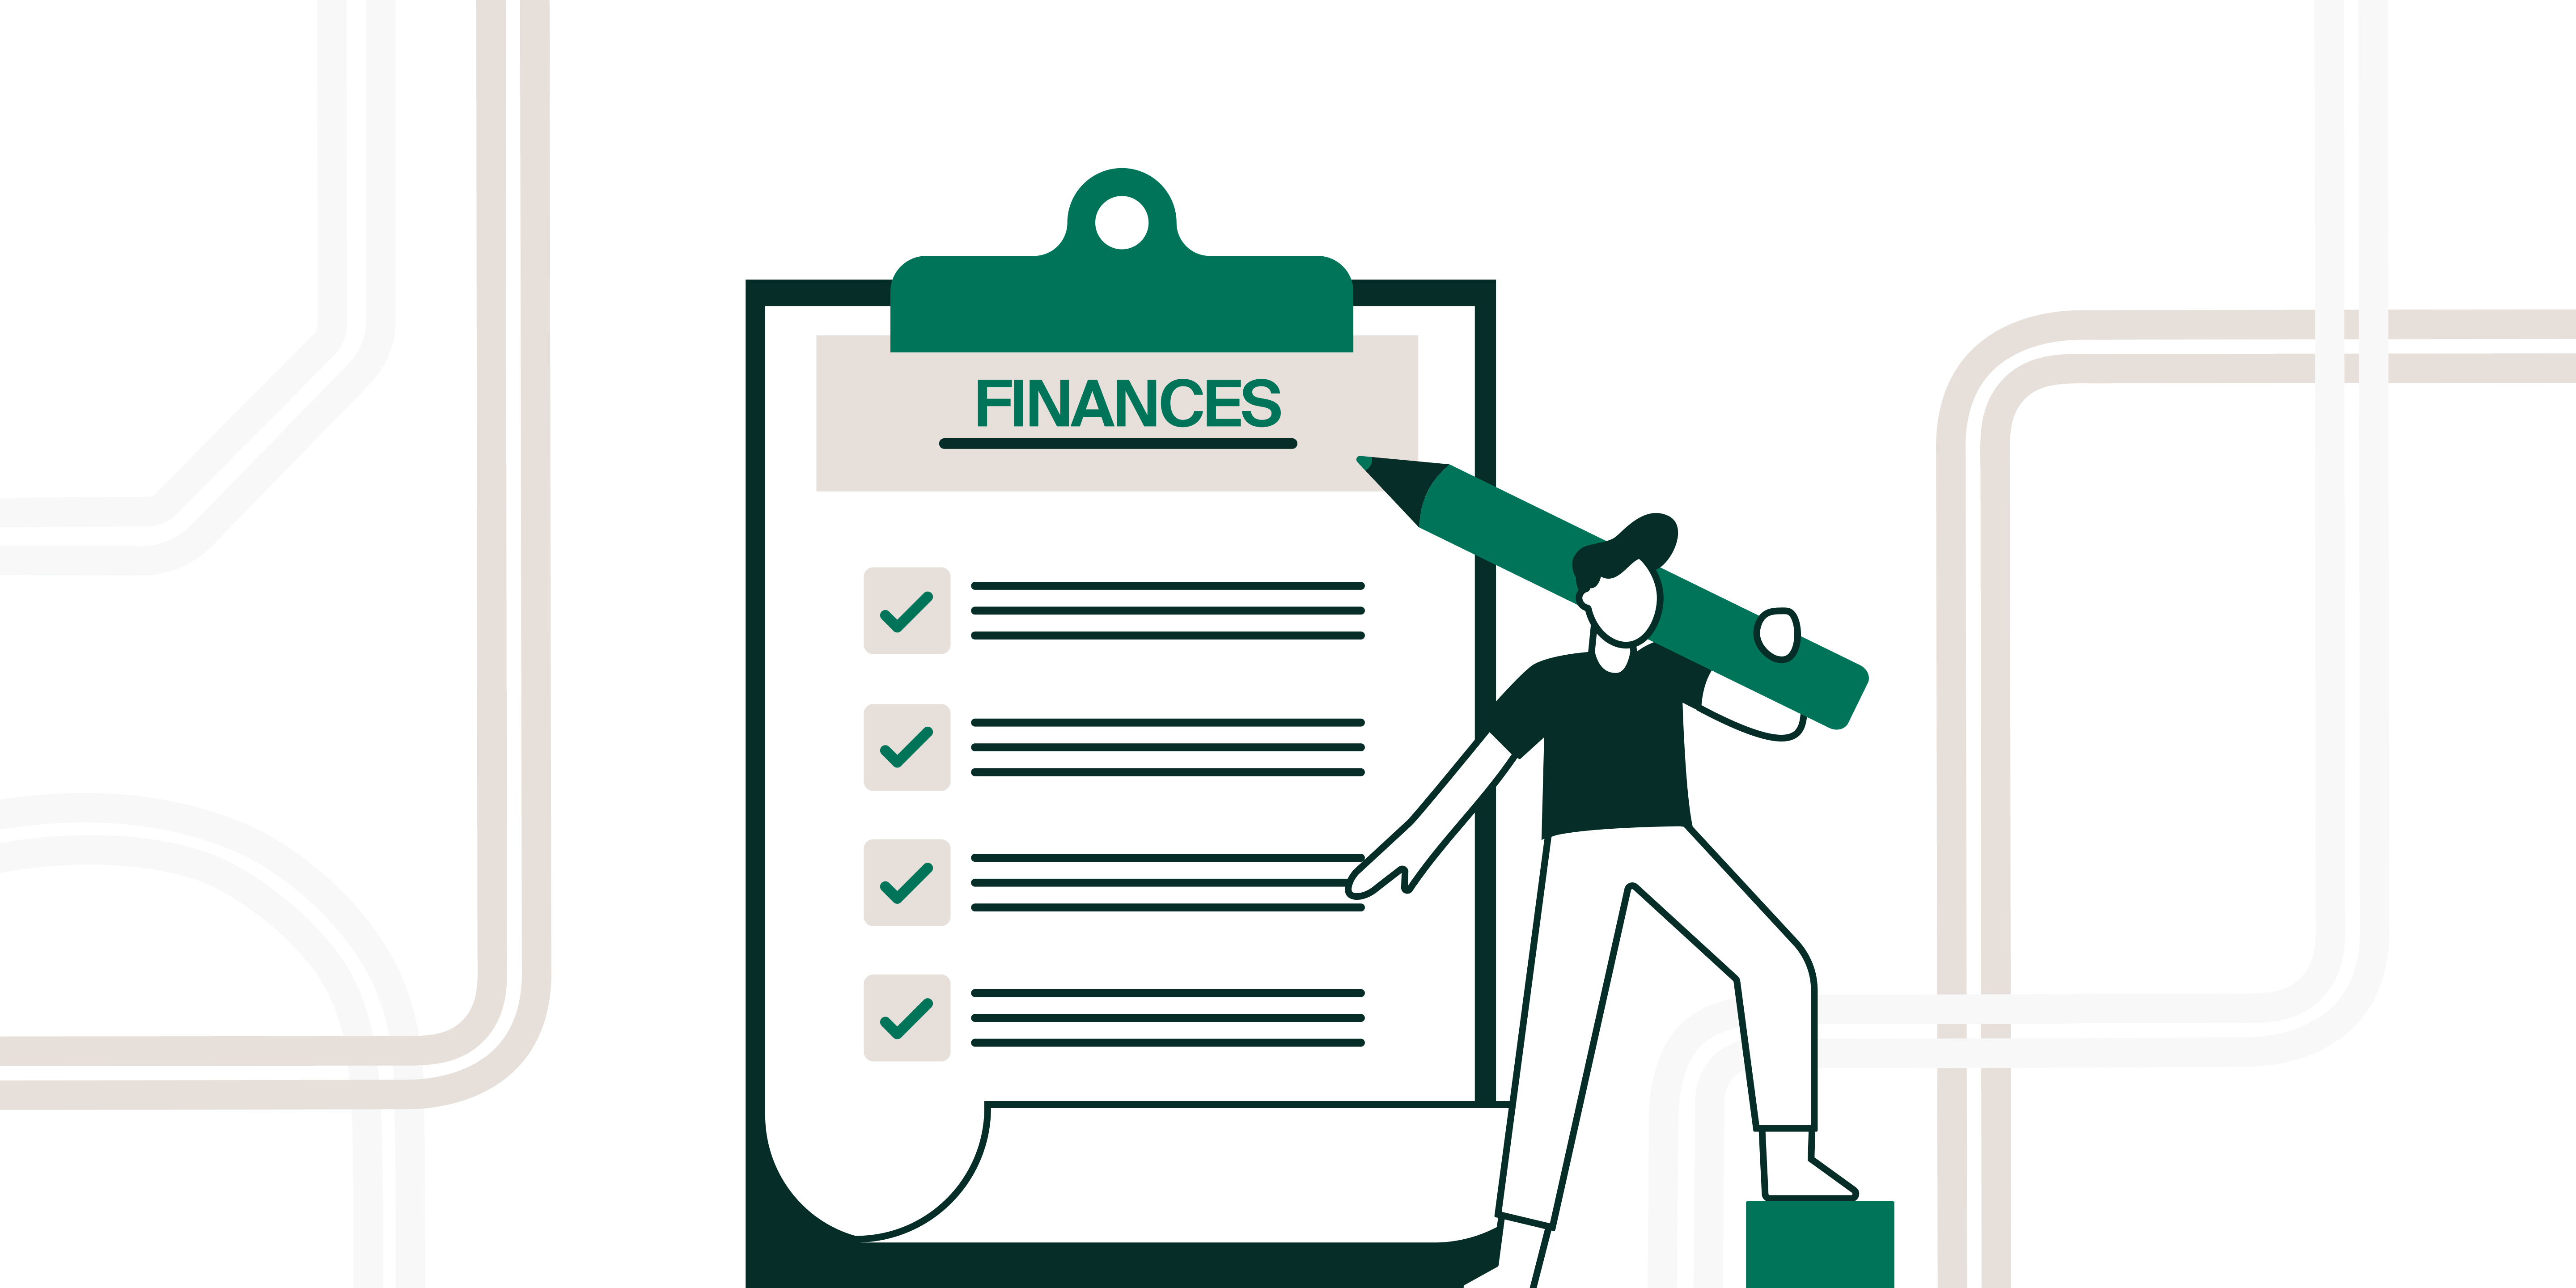 """Decorative, illustration of a person holding an enormous pencil in front of an enormous checklist labeled """"Finances"""" 